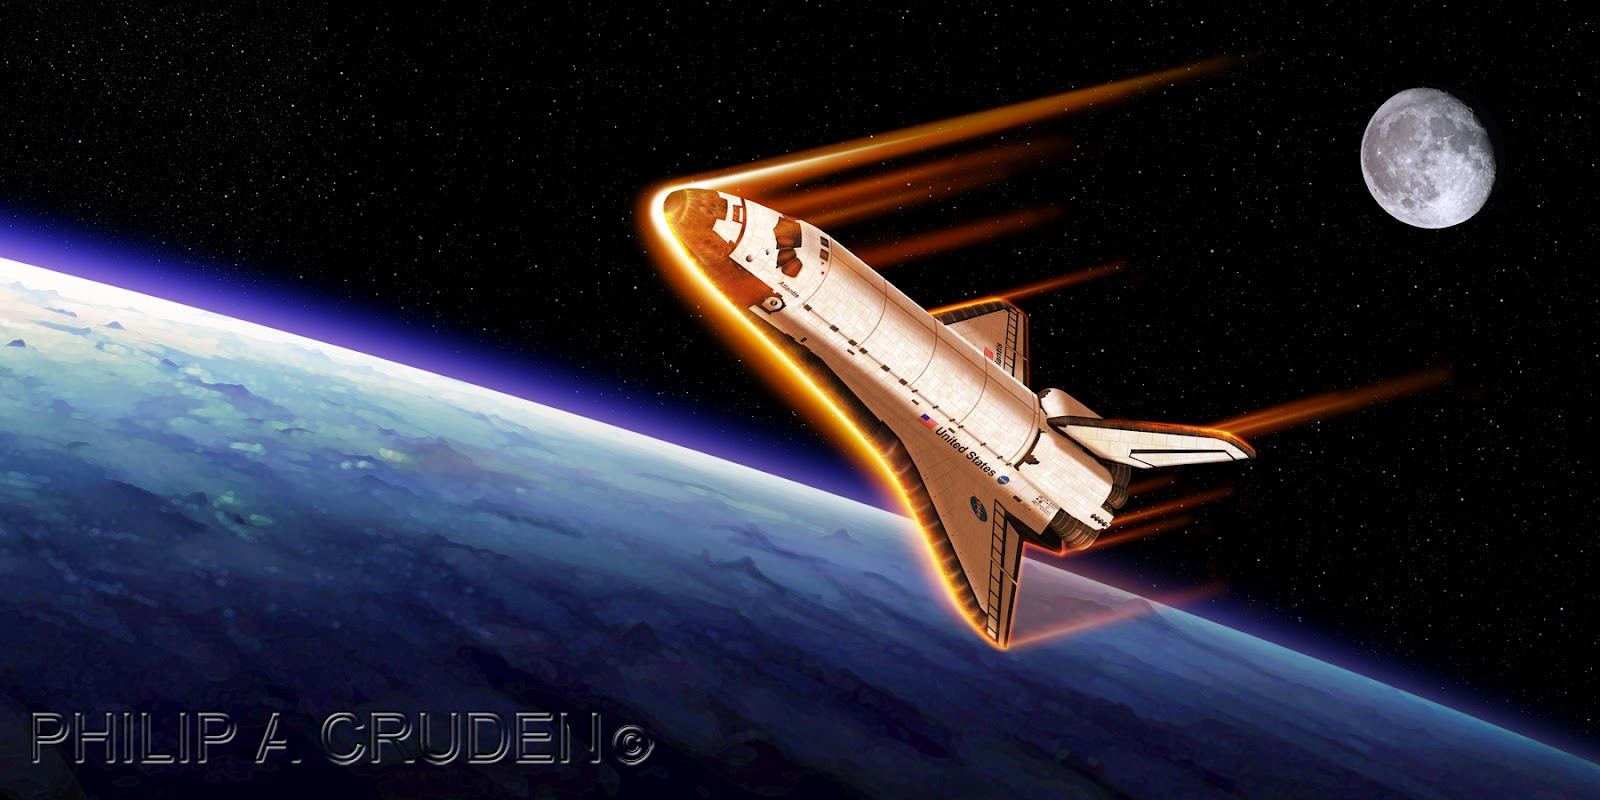 space shuttle speed - photo #47